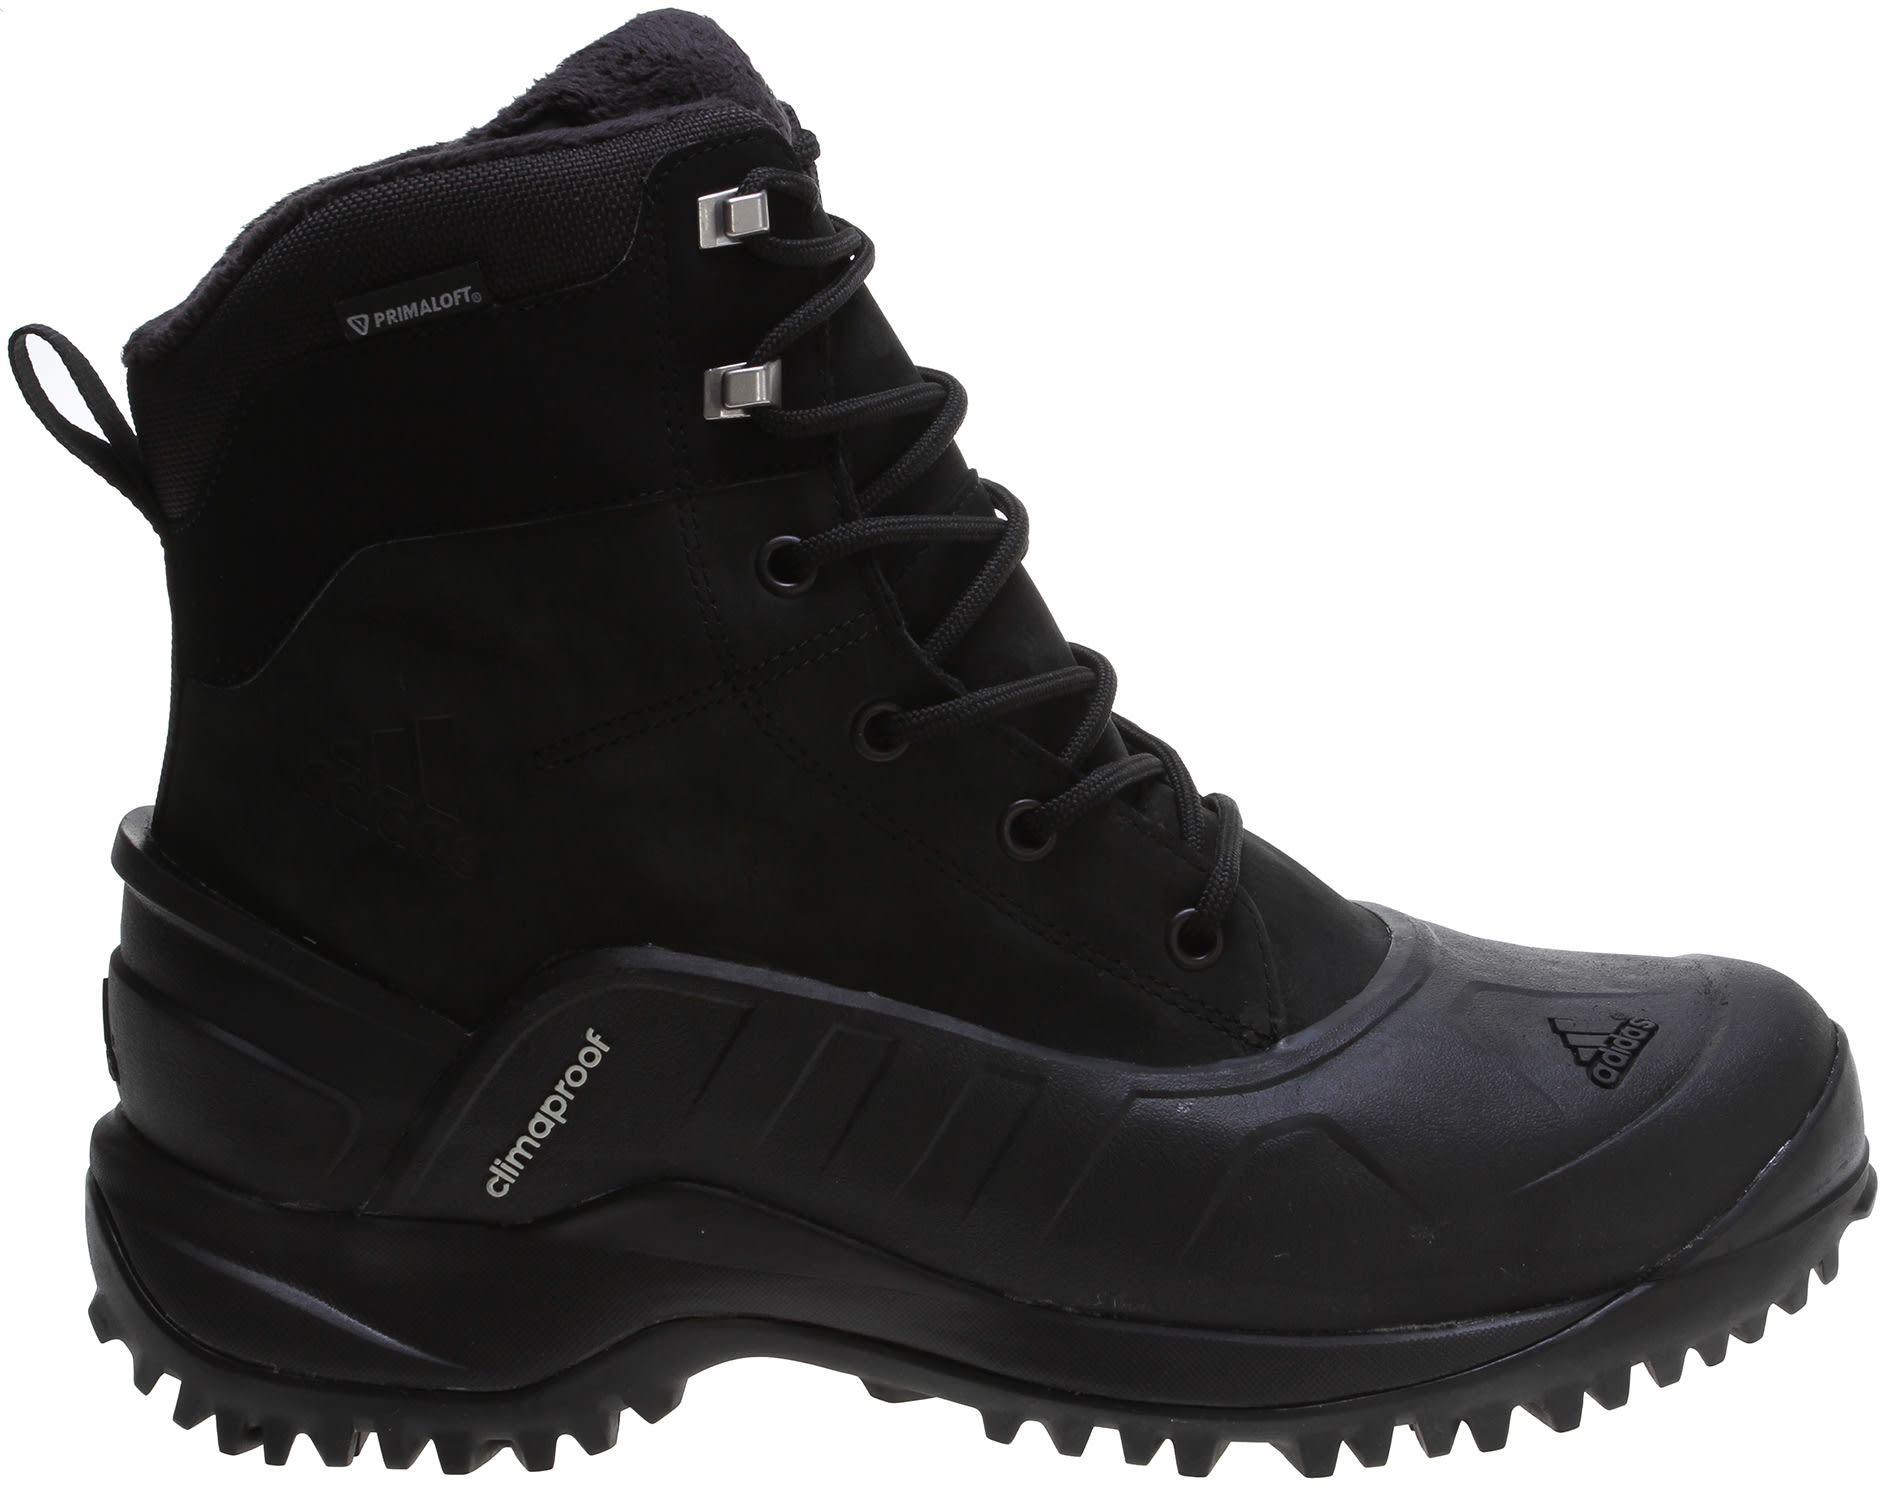 Hiking Boots For Men Deals On 1001 Blocks